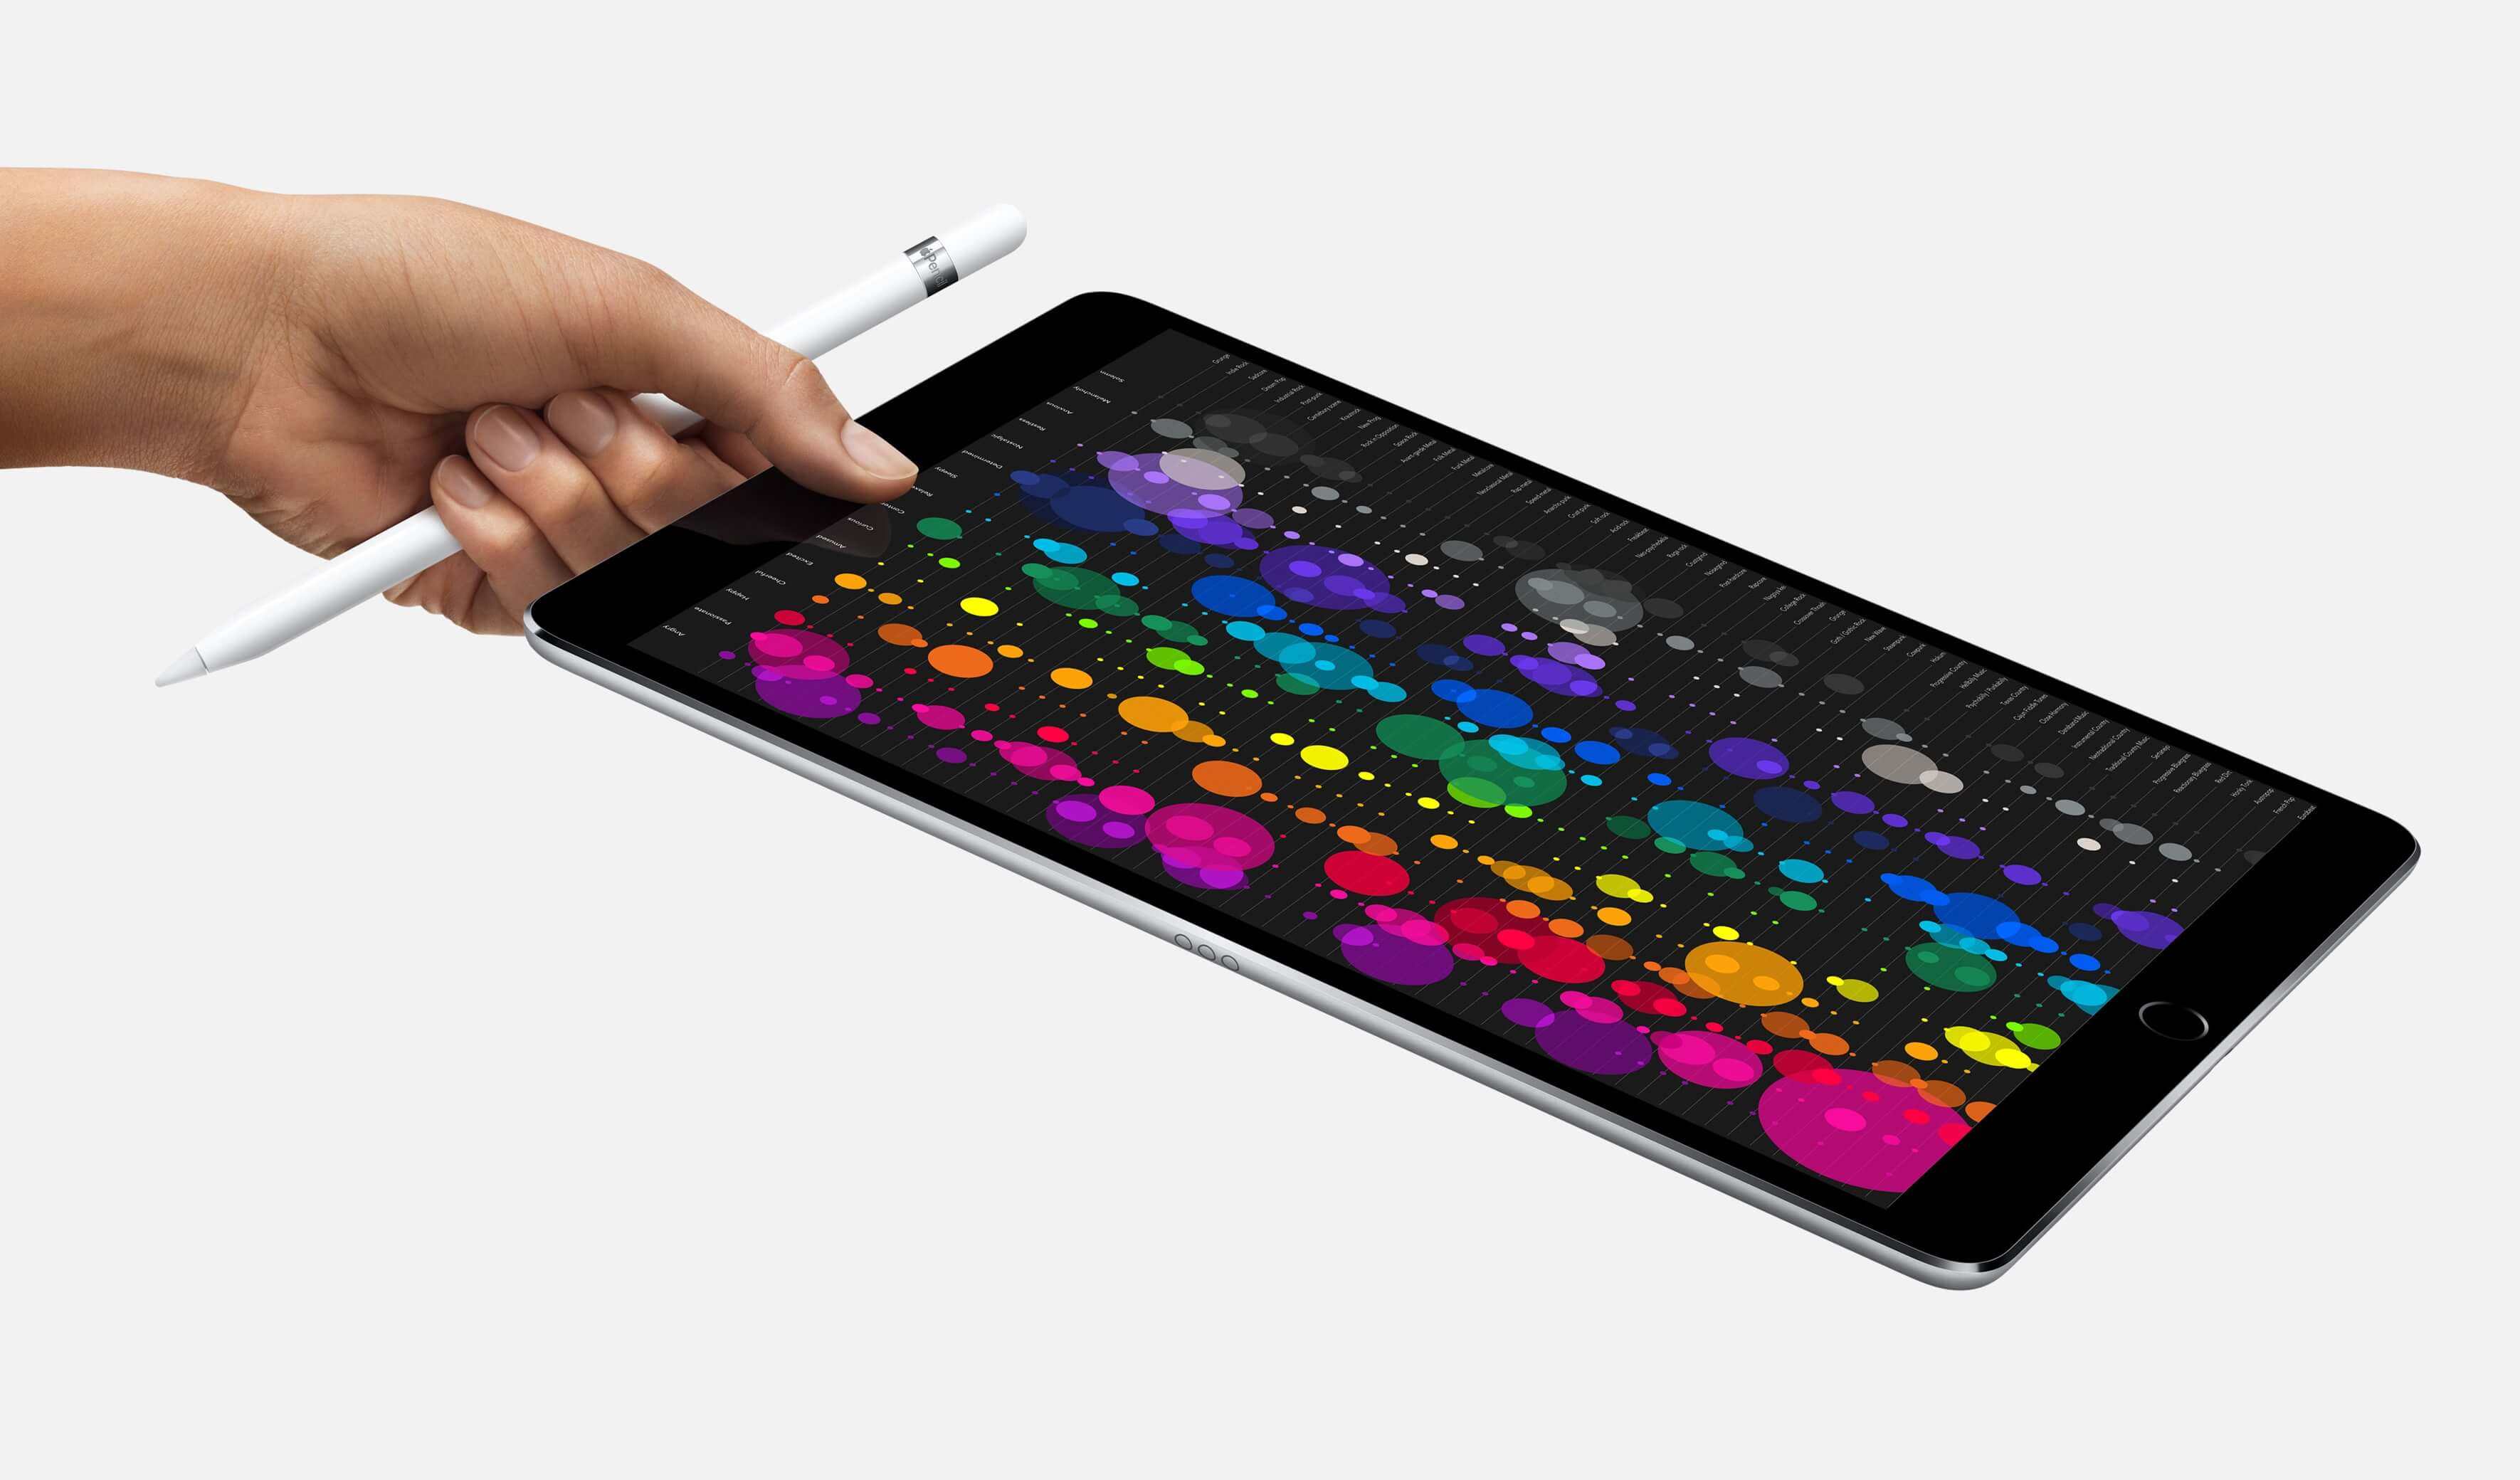 Shop Best Buy for Apple iPads including the new iPad and popular models like the iPad Mini iPad Air and iPad with Retina Display Shop for iPad accessories too!